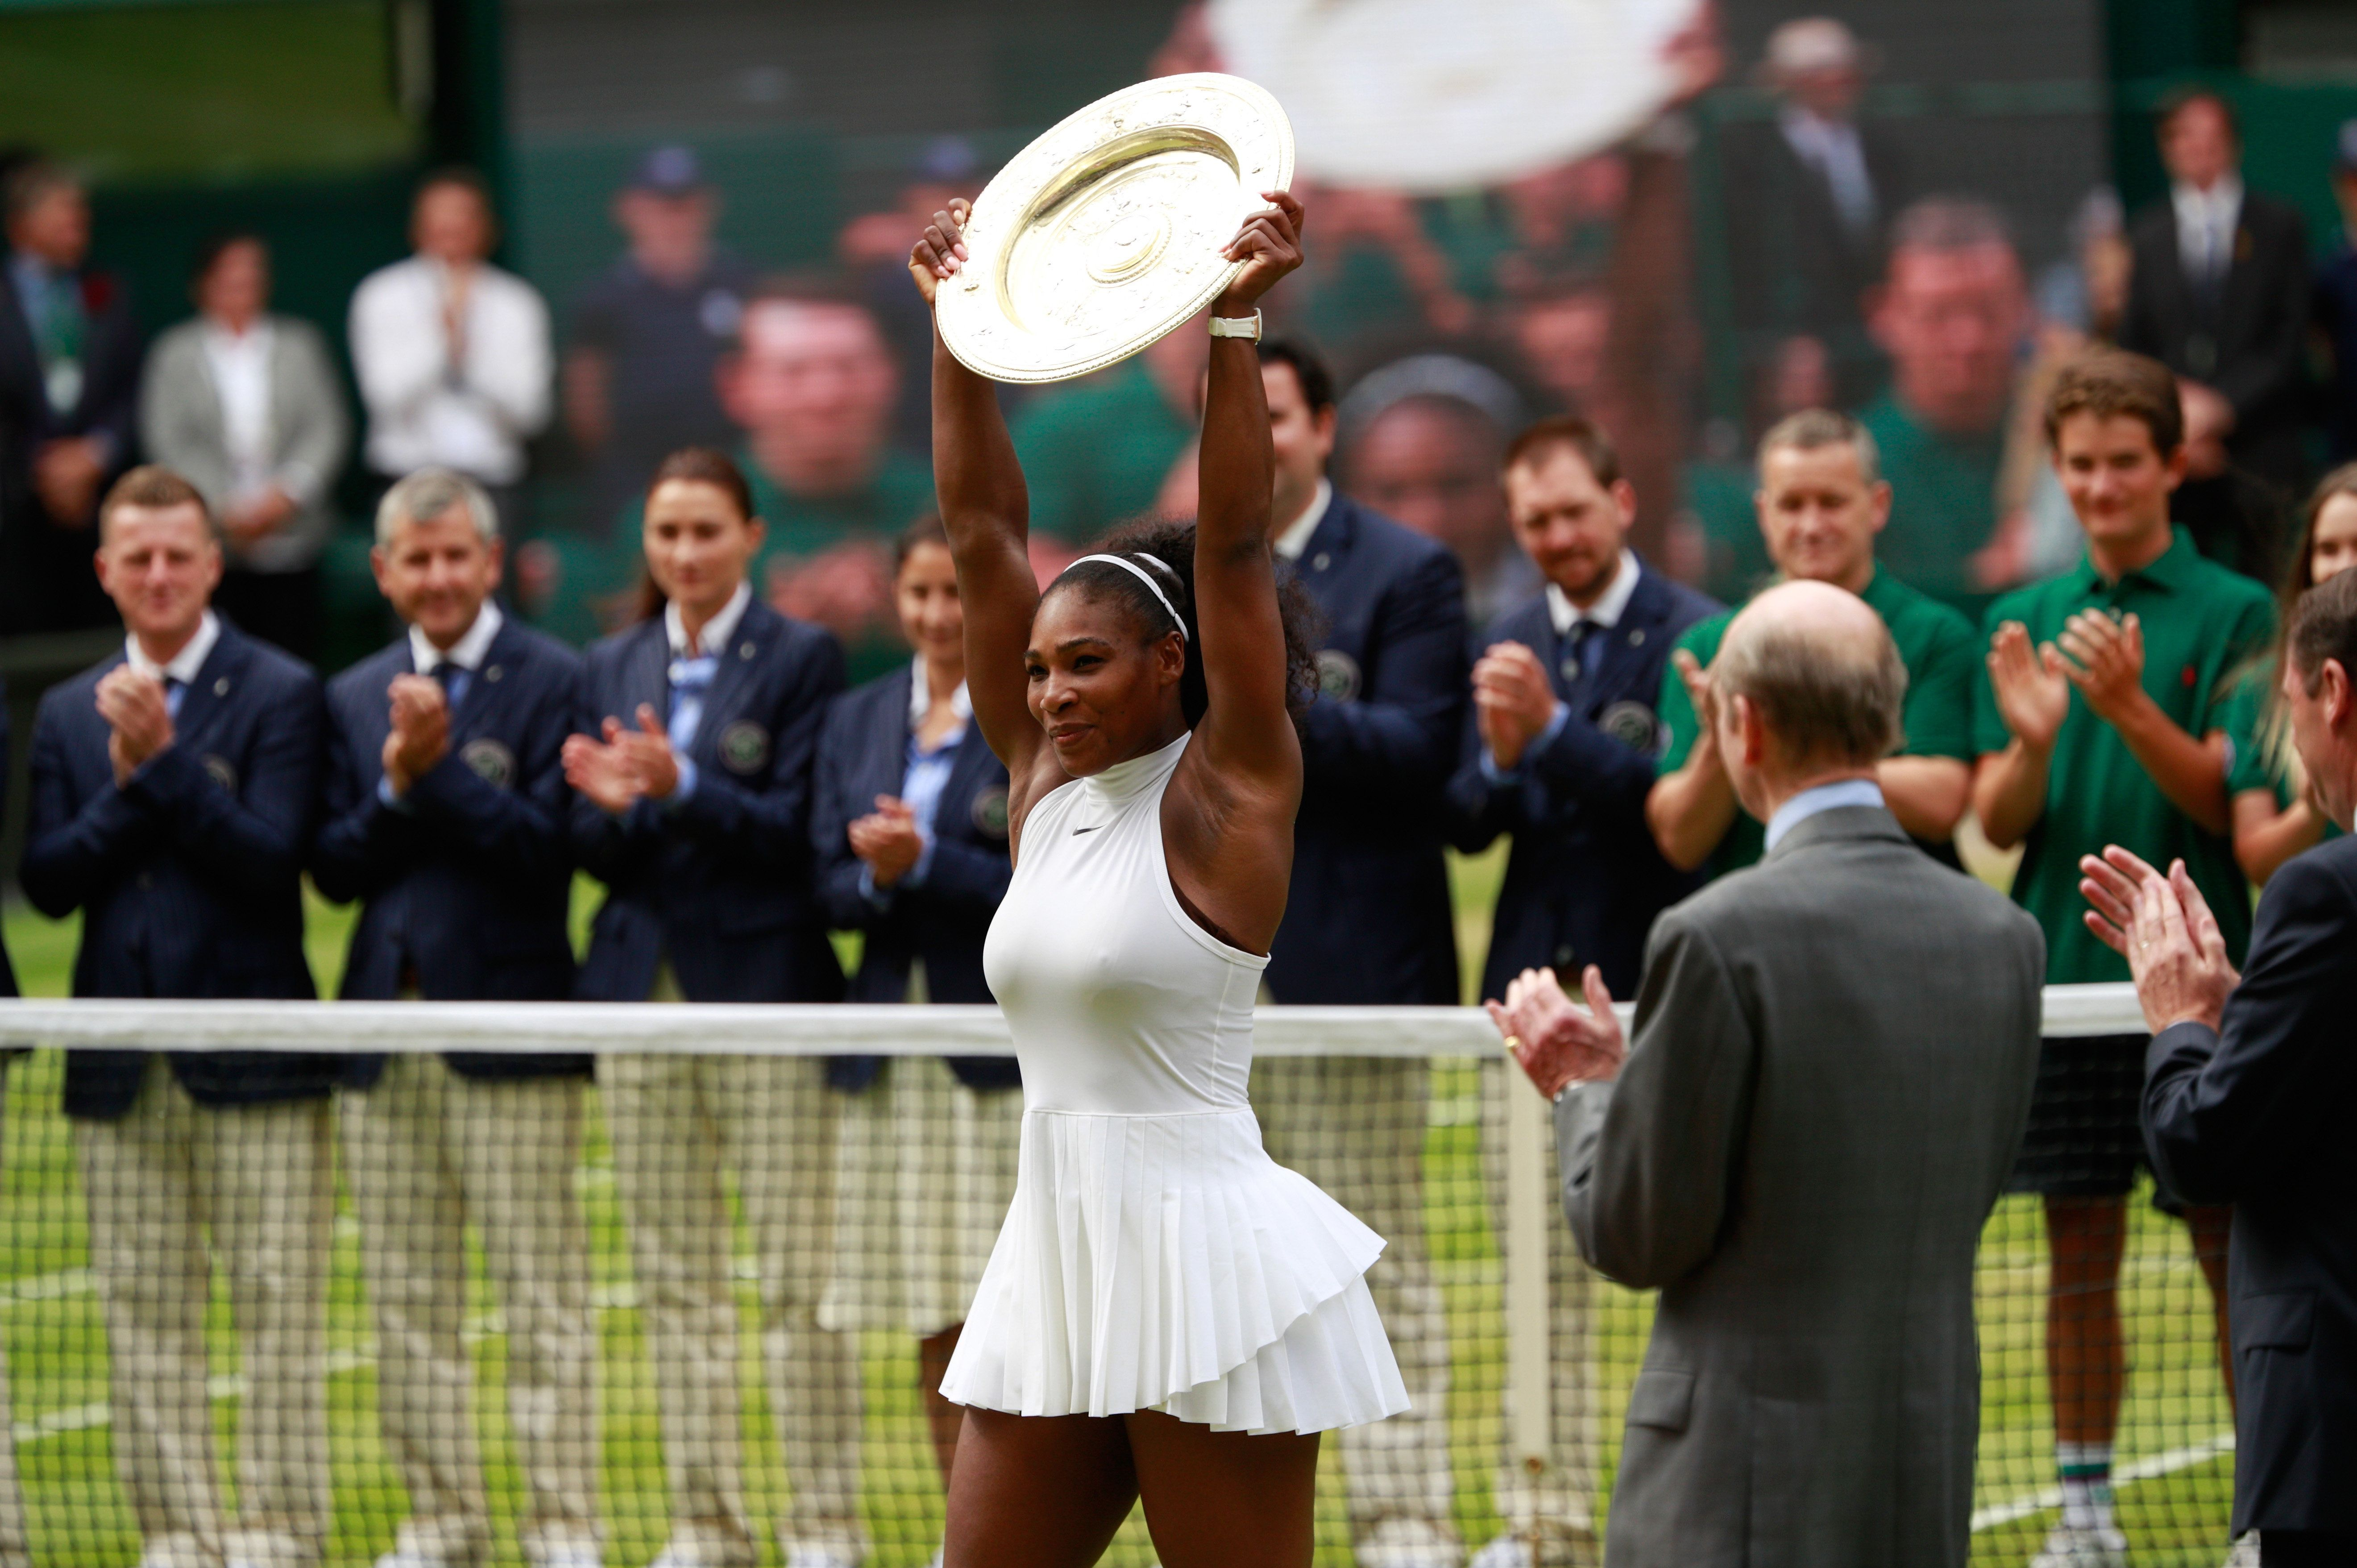 LONDON, ENGLAND - JULY 09:  Serena Williams of The United States lifts the trophy following victory in The Ladies Singles Final against Angelique Kerber of Germany on day twelve of the Wimbledon Lawn Tennis Championships at the All England Lawn Tennis and Croquet Club on July 9, 2016 in London, England.  (Photo by Adam Pretty/Getty Images)